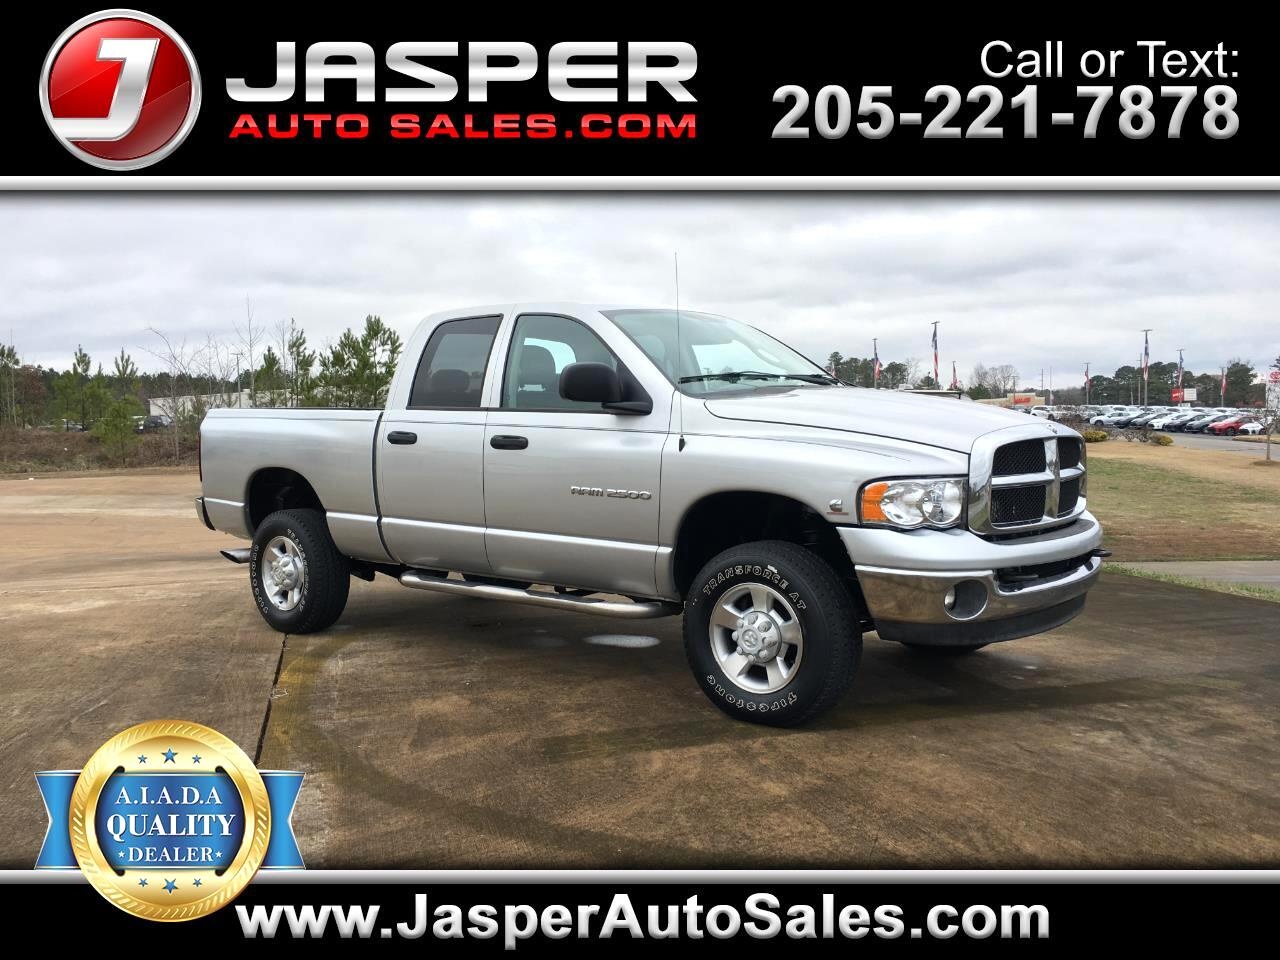 Jasper Auto Sales Select Jasper Al New Used Cars Trucks Sales